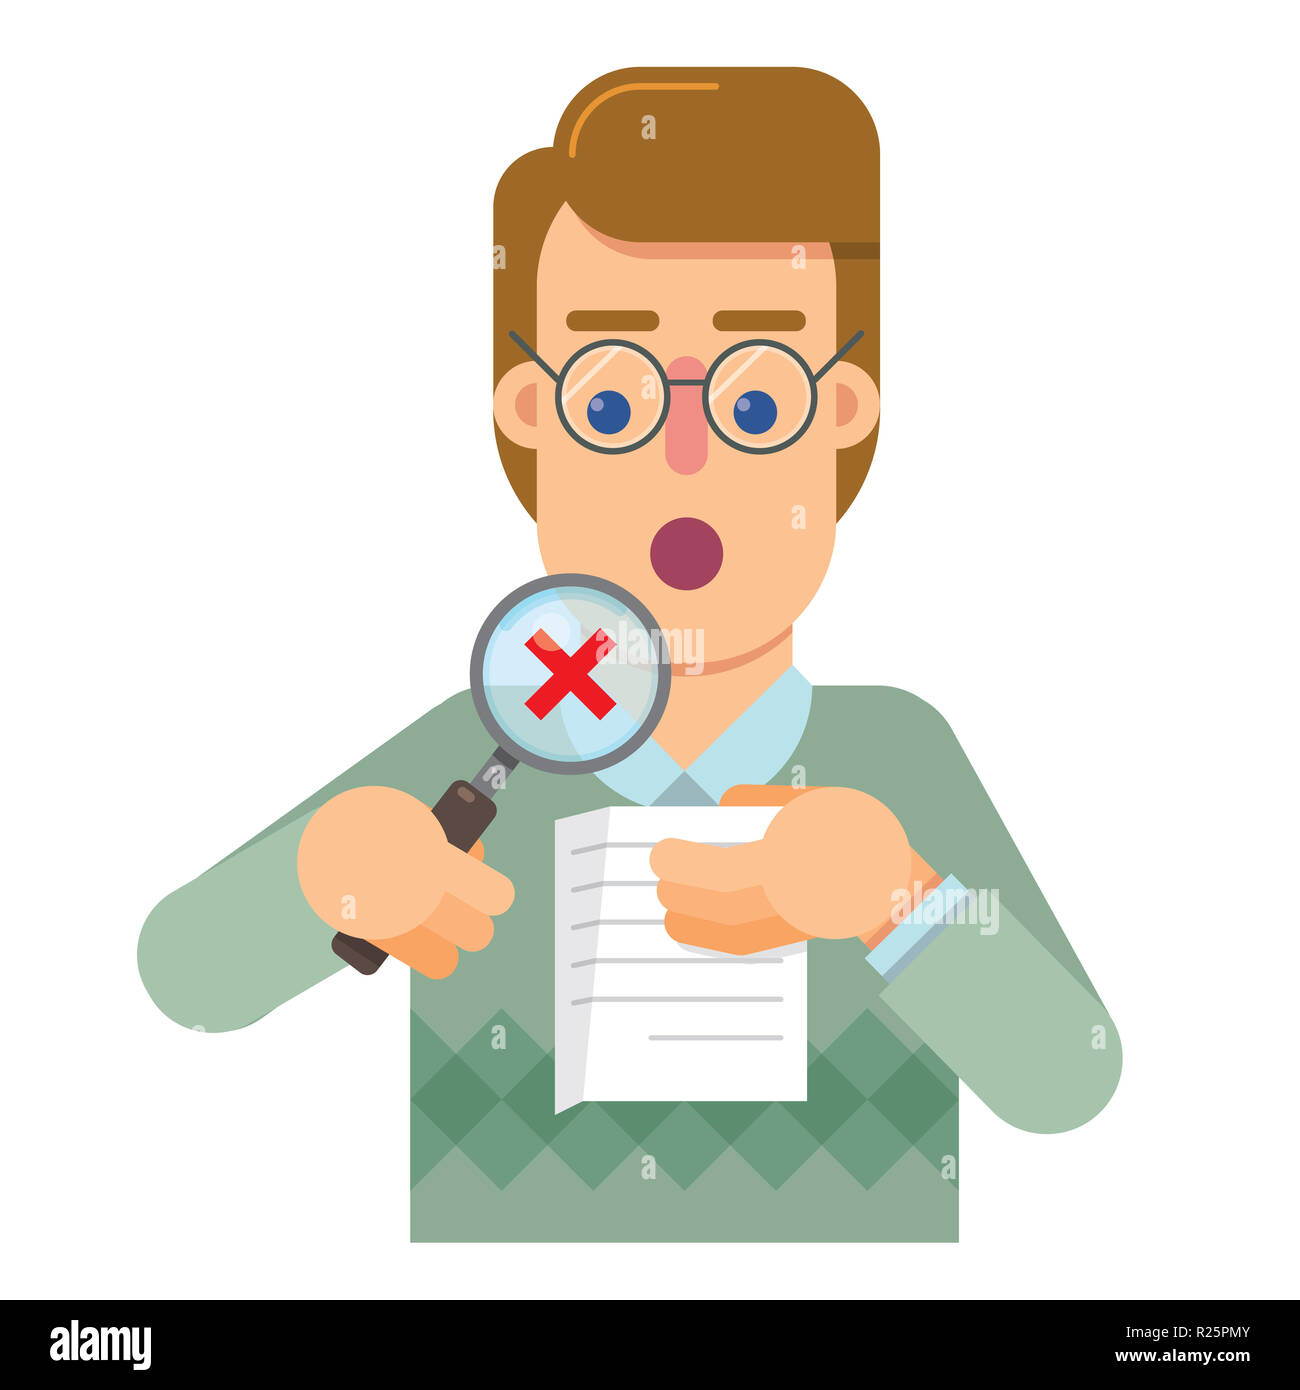 Person delegate to the audit that analyzes and research the correctness of the work - Stock Image